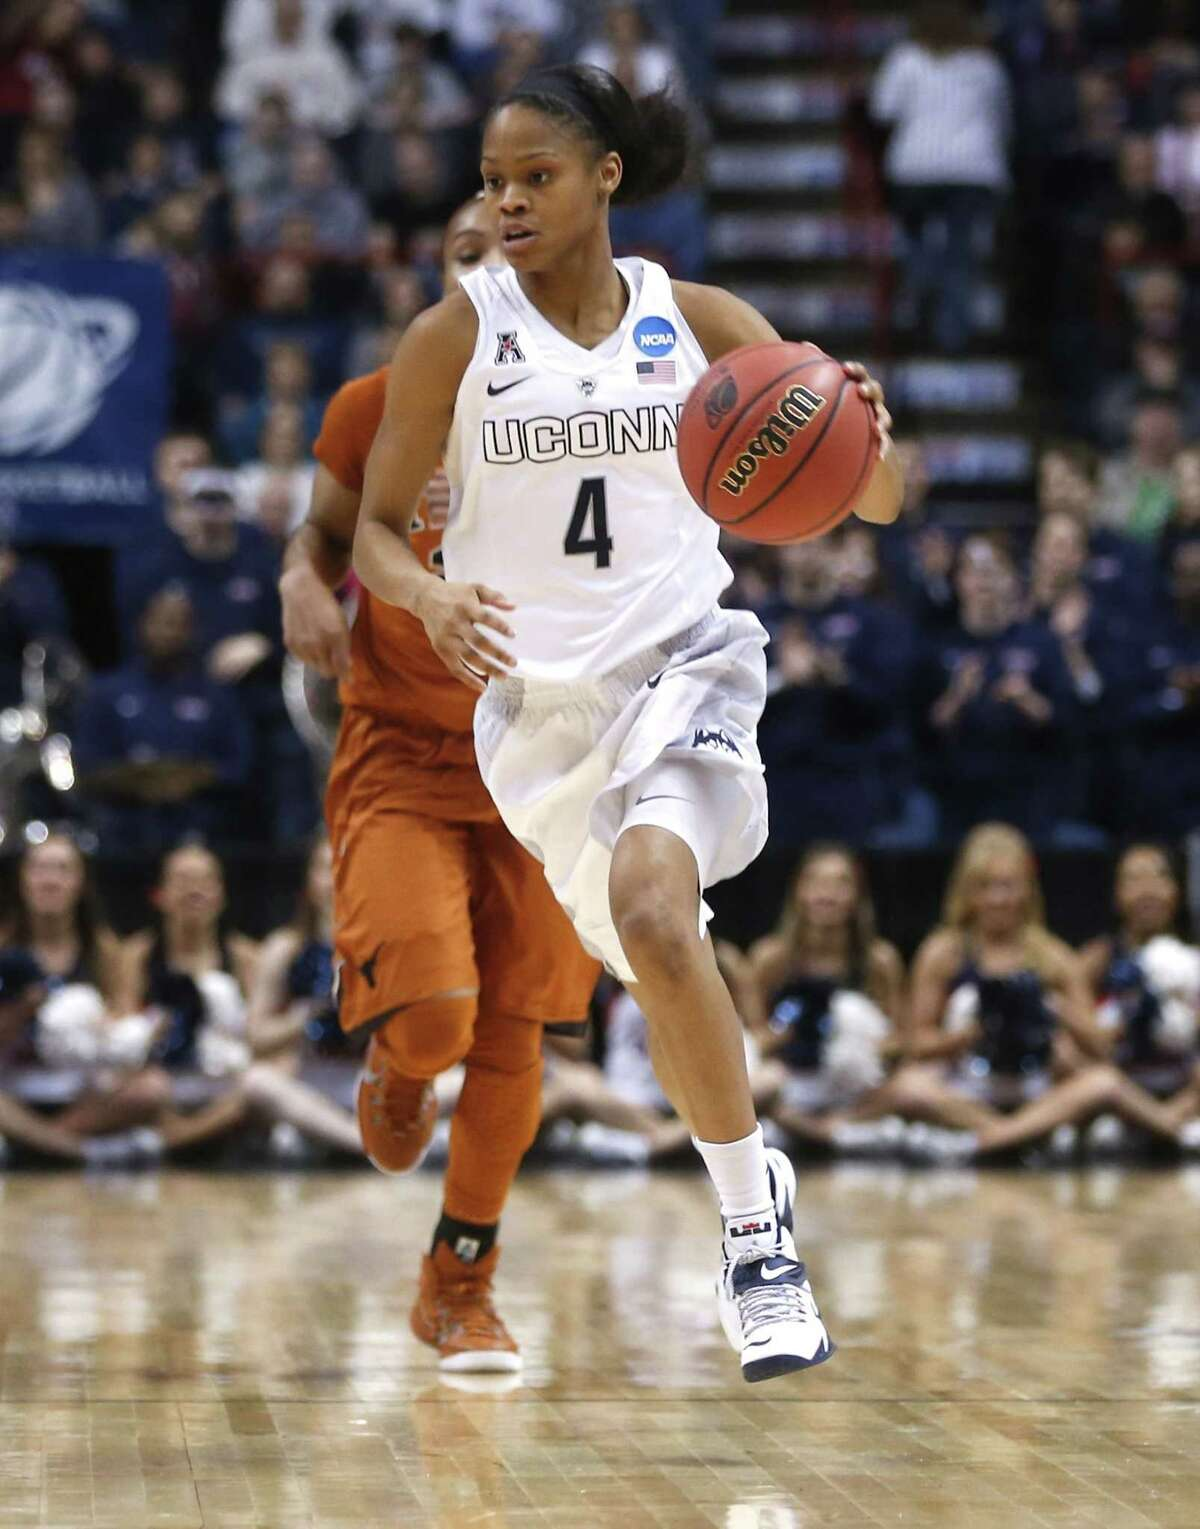 Connecticut guard Moriah Jefferson (4) moves the ball against Texas during the first half of a women's college basketball regional semifinal game in the NCAA Tournament on Saturday, March 28, 2015, in Albany, N.Y. (AP Photo/Mike Groll)